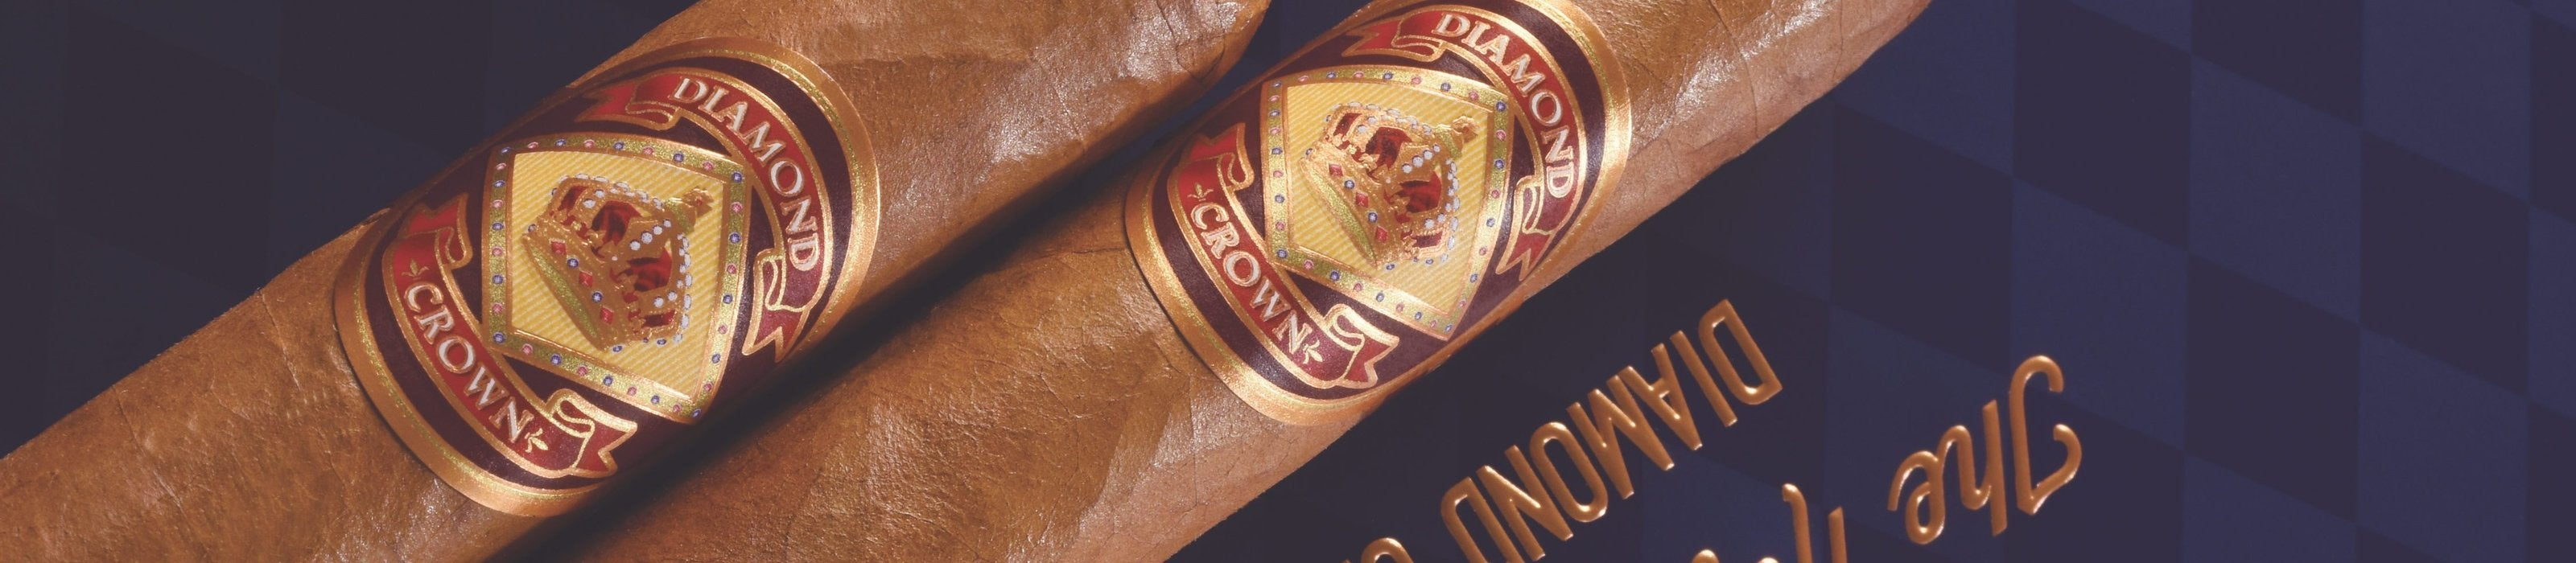 DIAMOND CROWN ROBUSTO #3 NATURAL